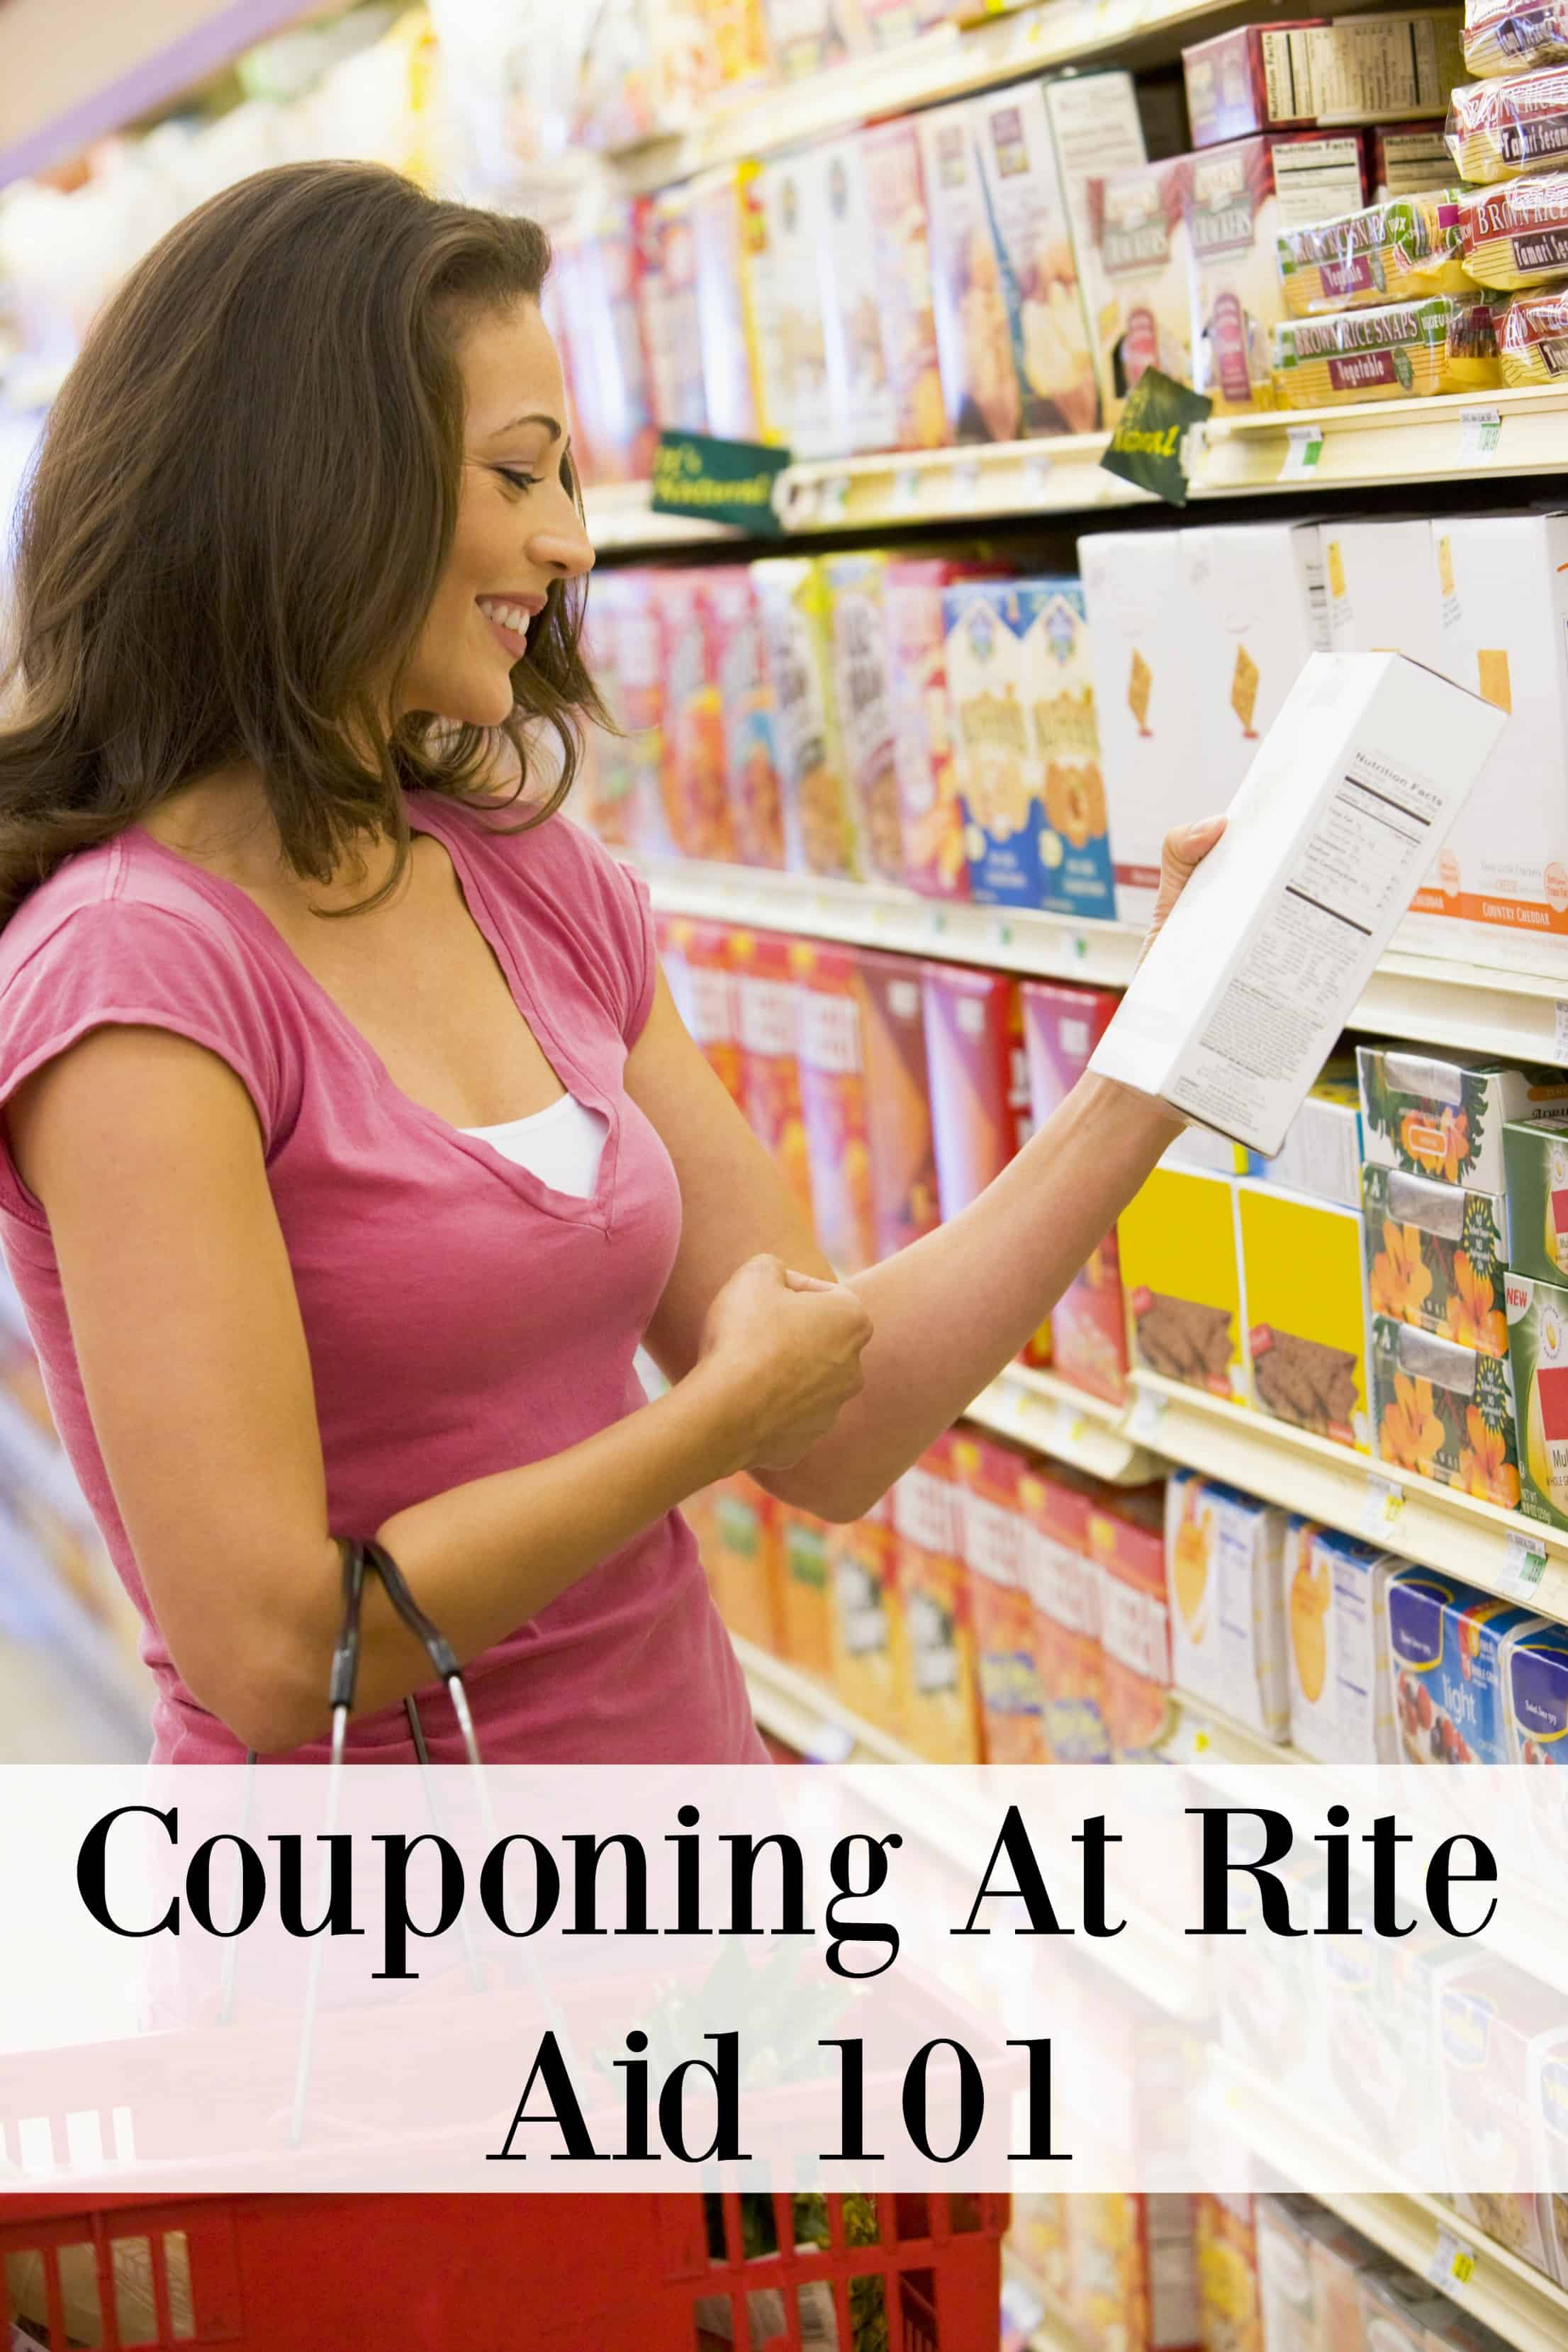 couponing at rite aid 101 and plenti points barefoot budgeting